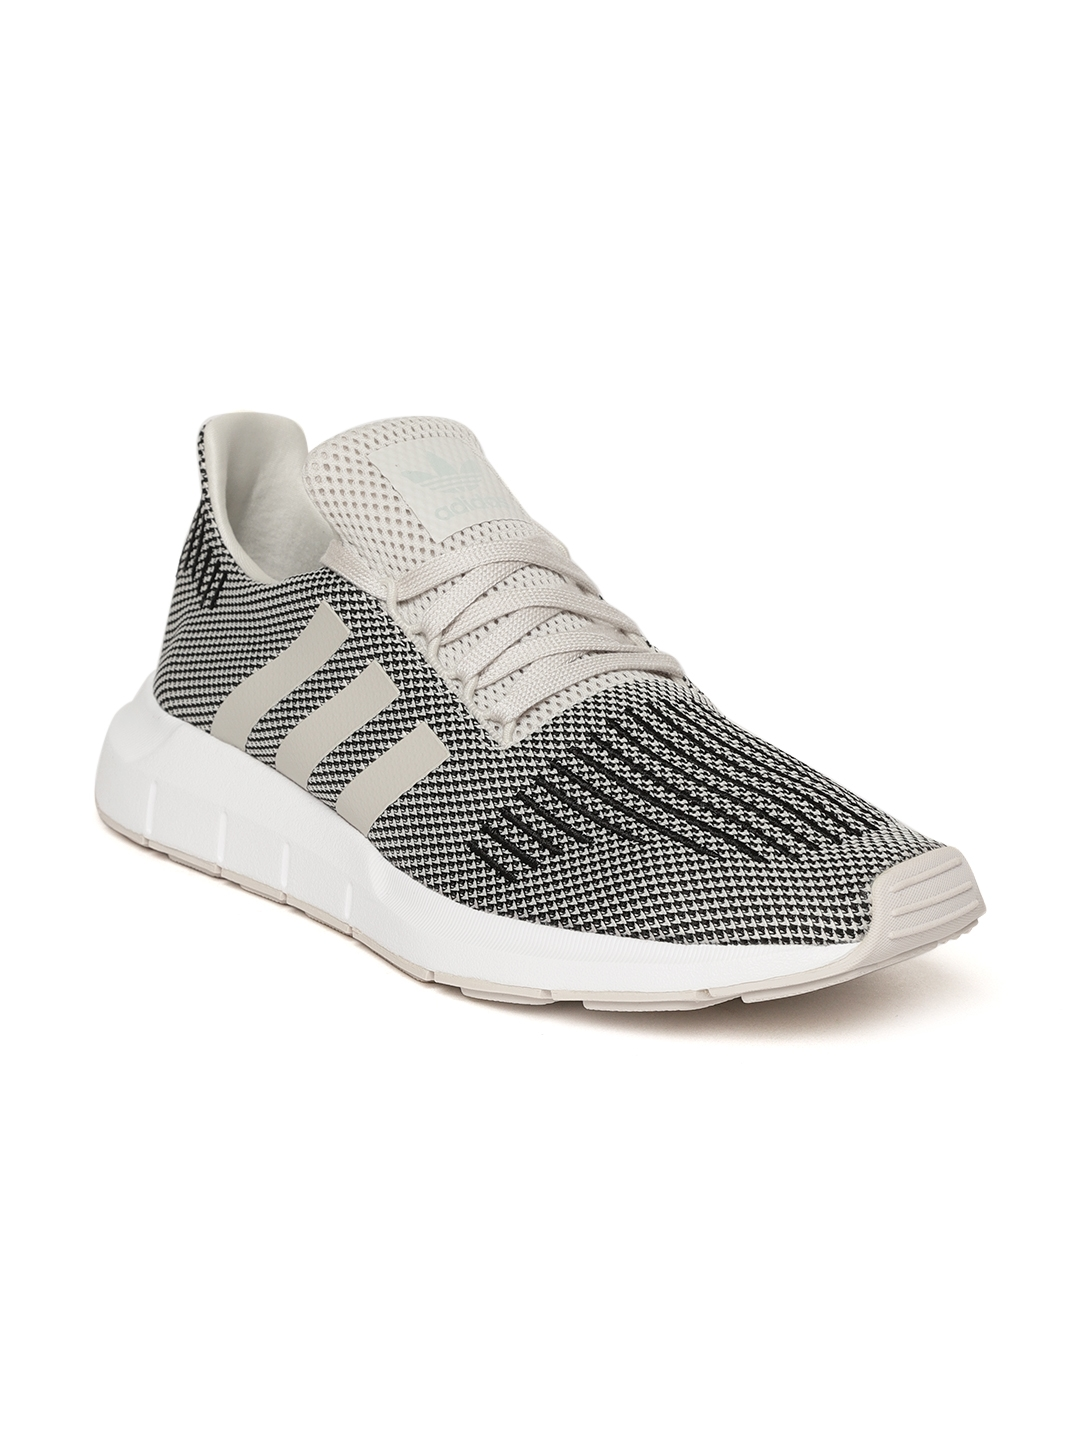 ddfba0ccea Buy ADIDAS Originals Men Off White & Black Swift Running Shoes ...